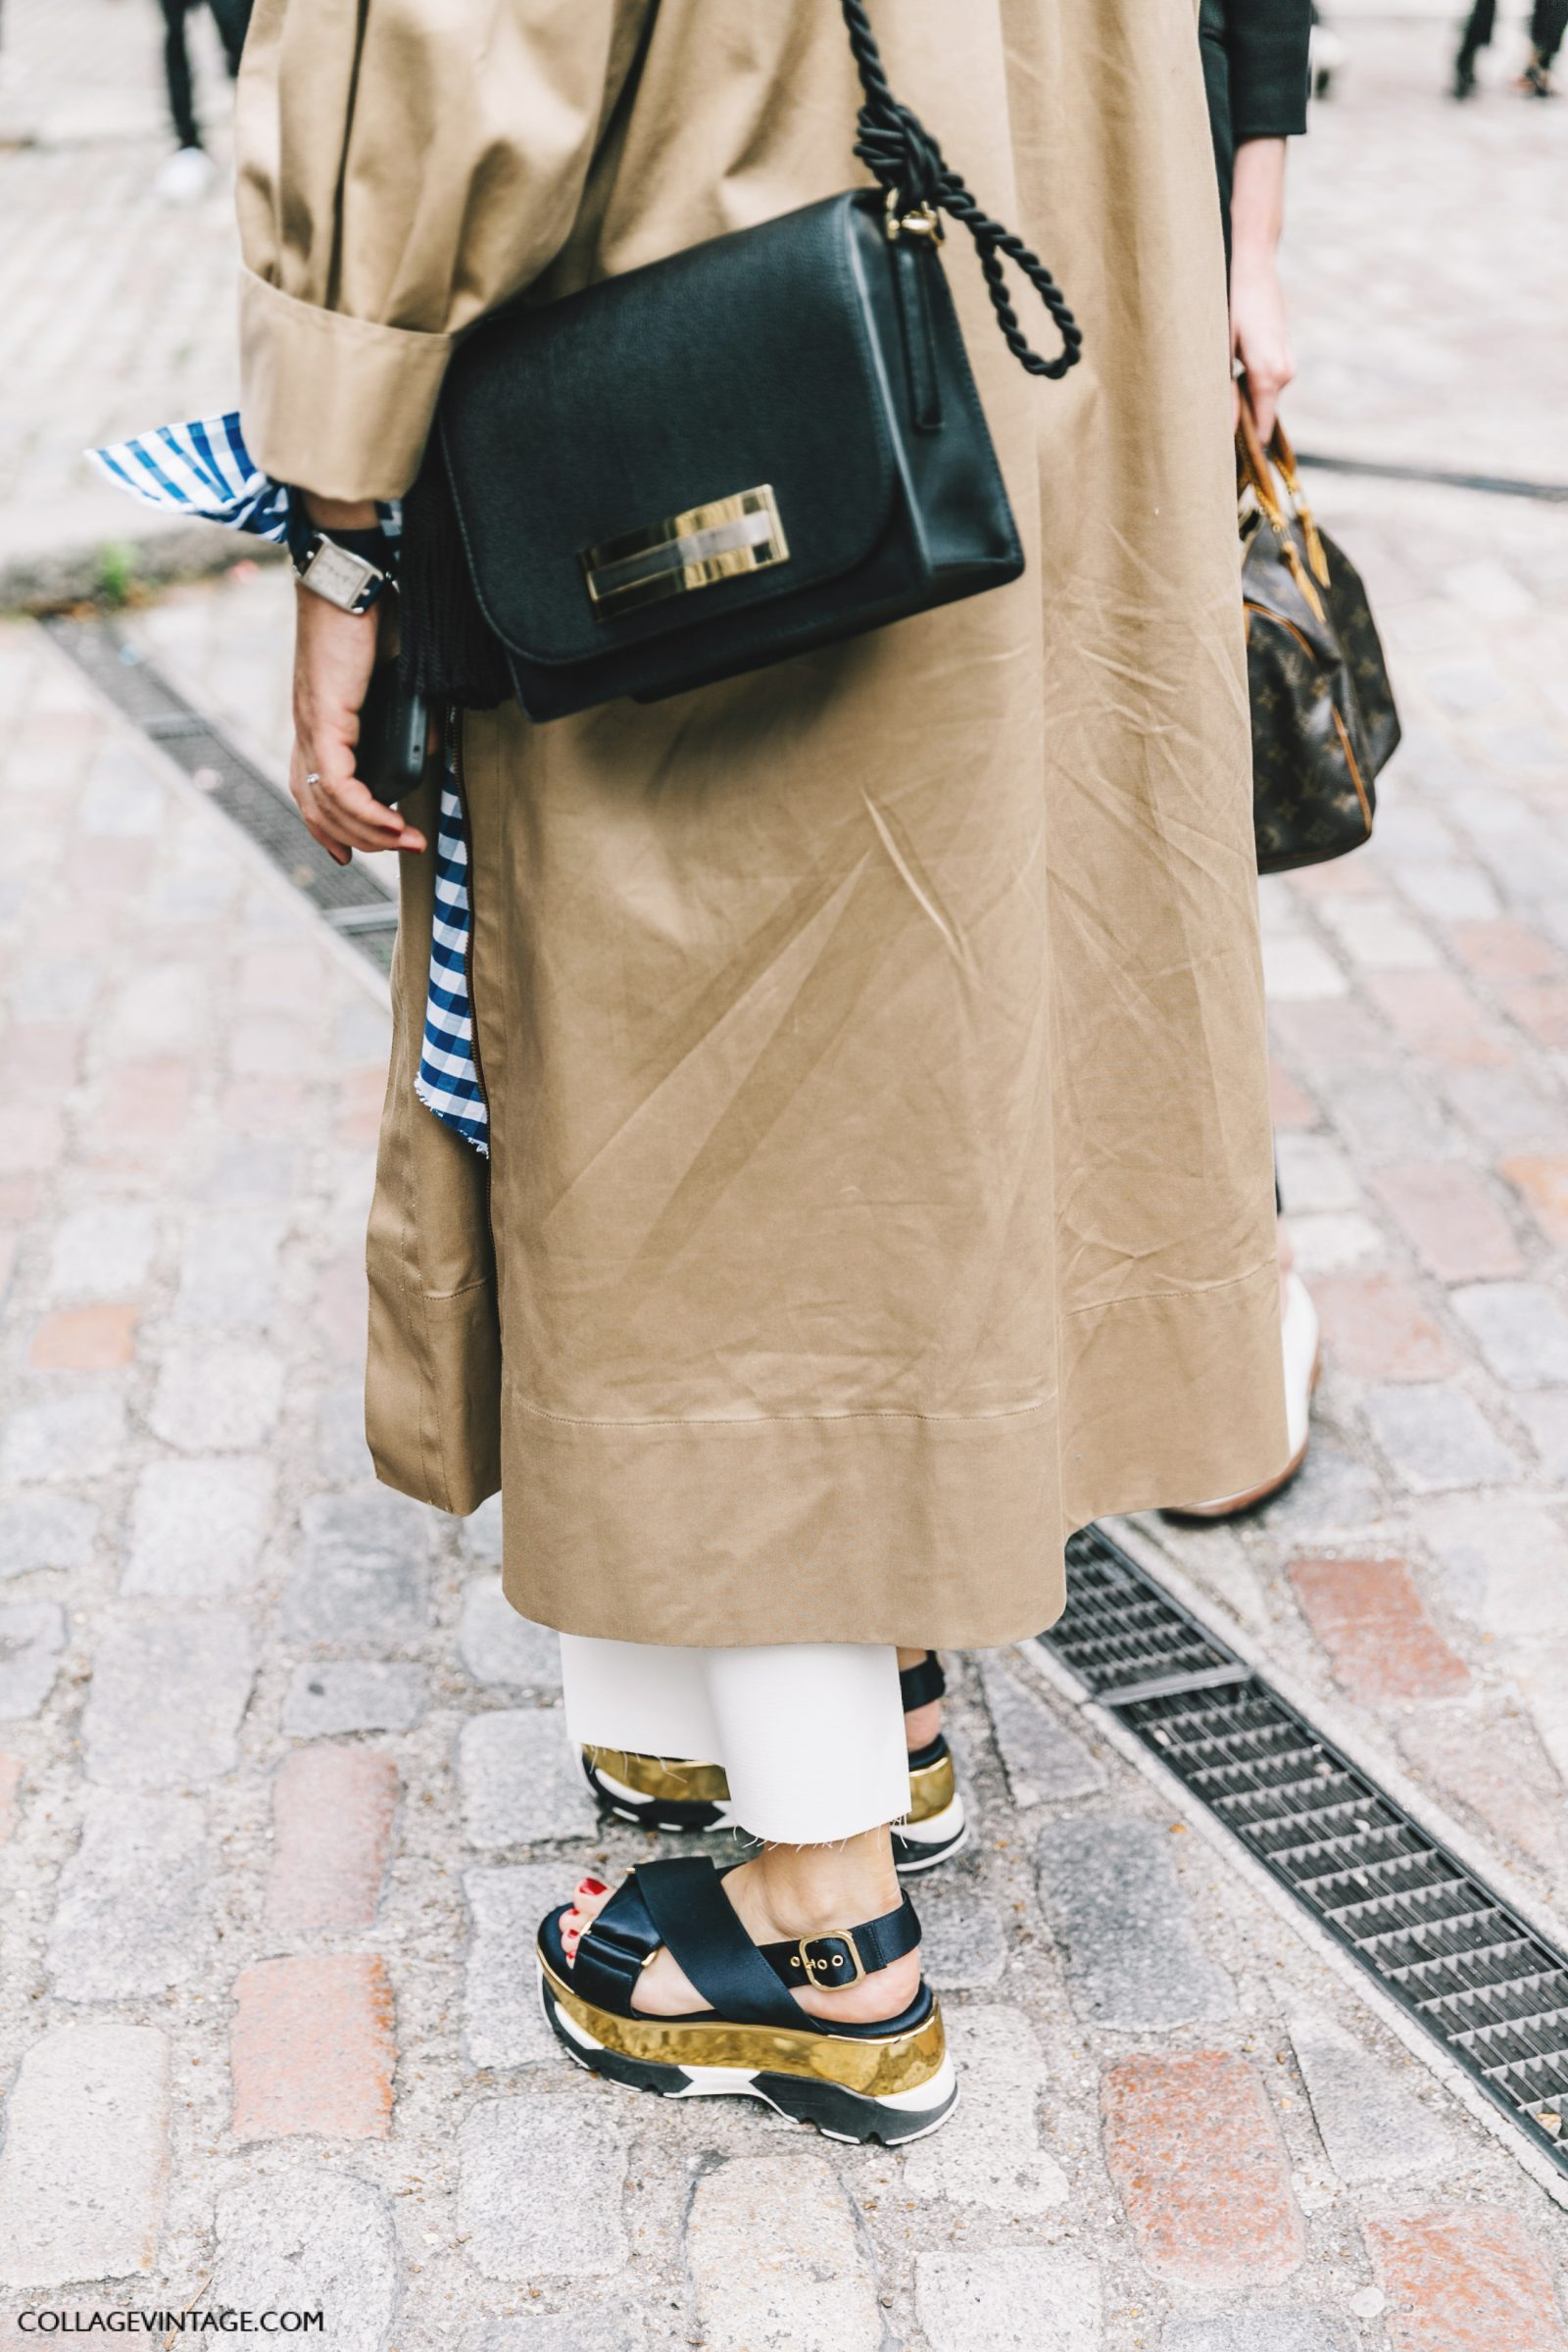 lfw-london_fashion_week_ss17-street_style-outfits-collage_vintage-vintage-topshop_unique-anya-mulberry-preen-67